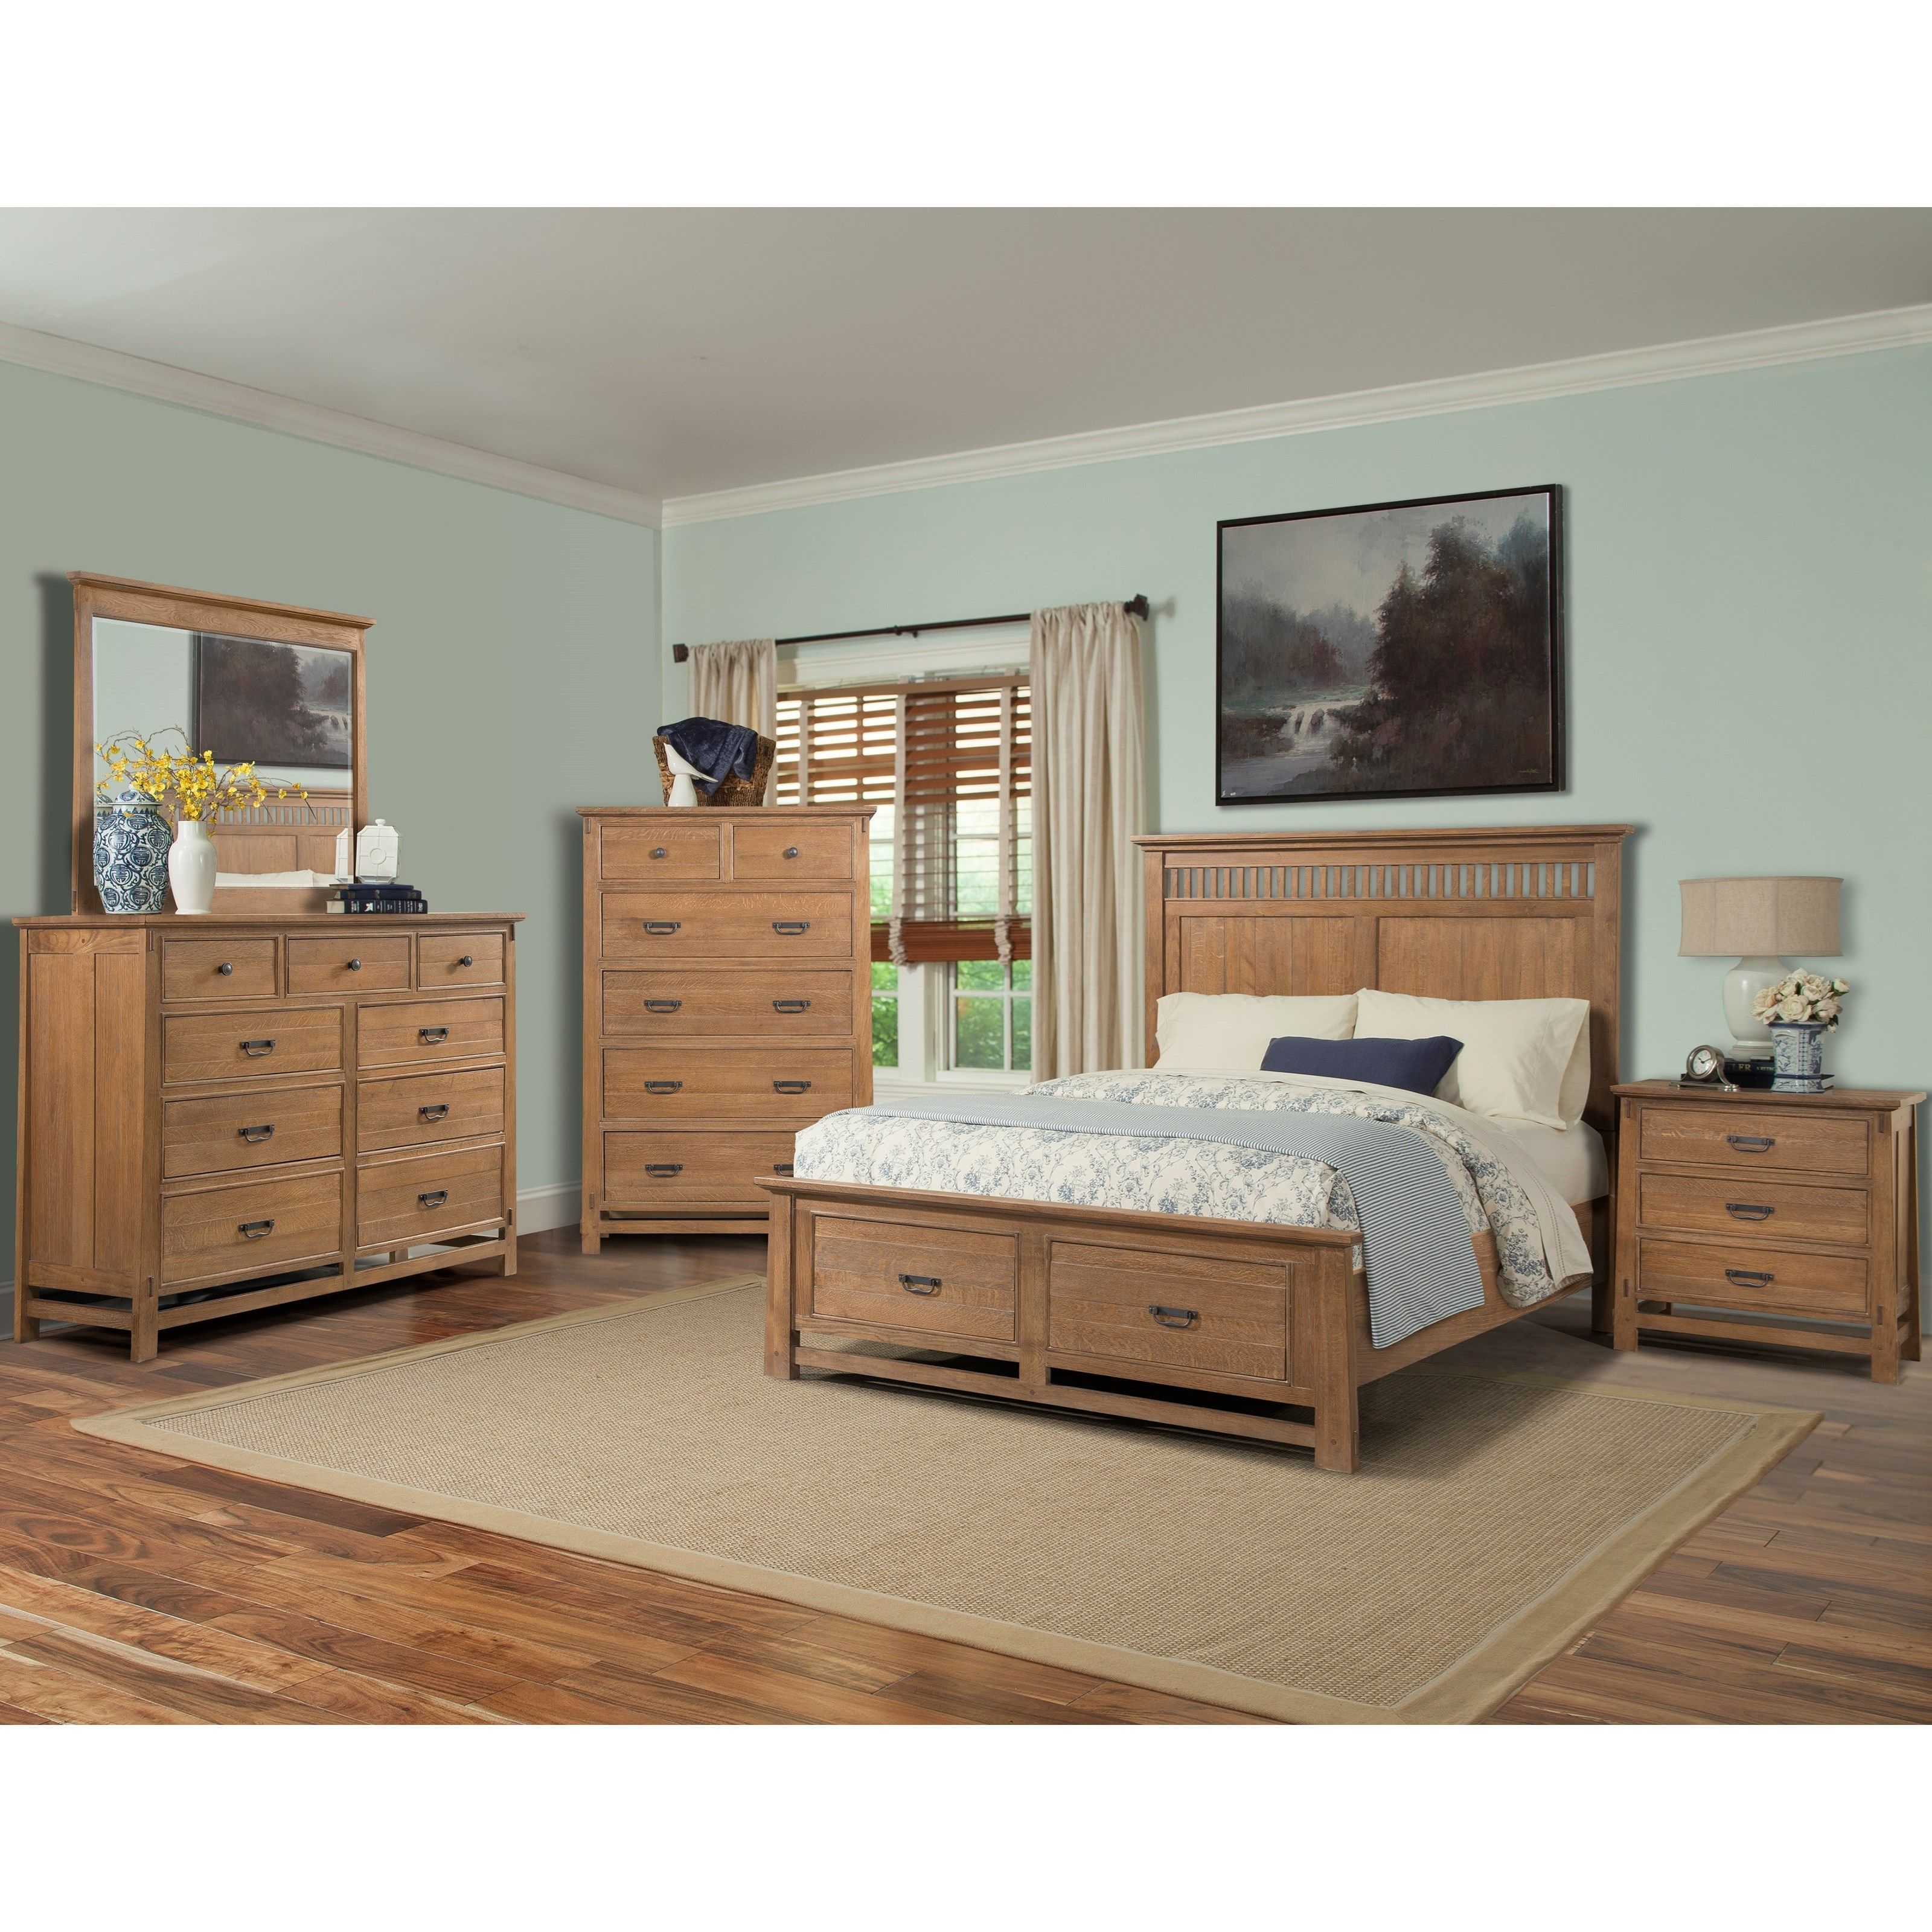 Cresent Fine Furniture Camden Queen Bedroom Group 2 - Item Number: 202 Q Bedroom Group 2